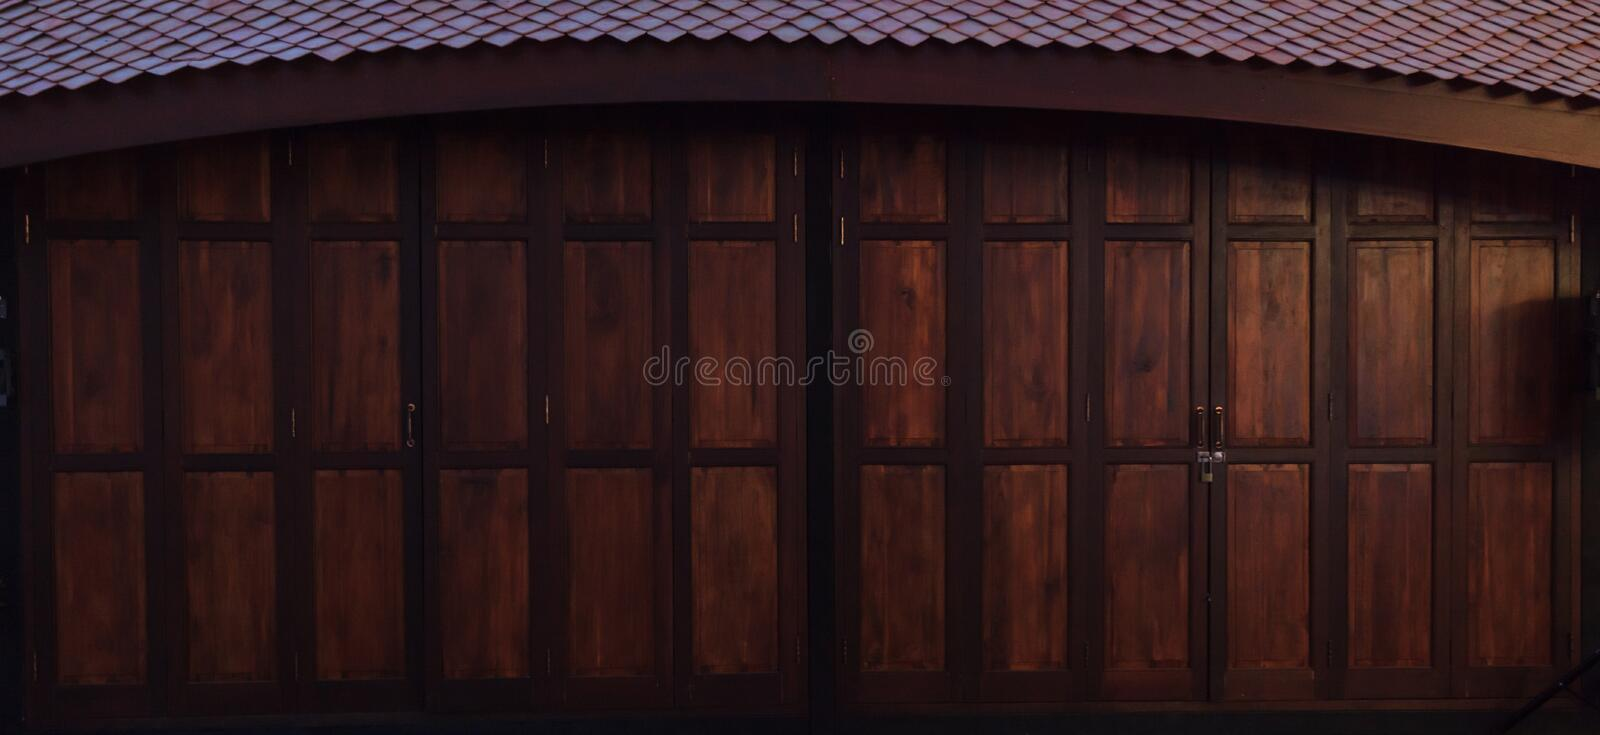 Vintage retro wooden door store front. Home interior architectural design, plain tropical dark brown textured wood panel board. Wall in old traditional boutique stock photo